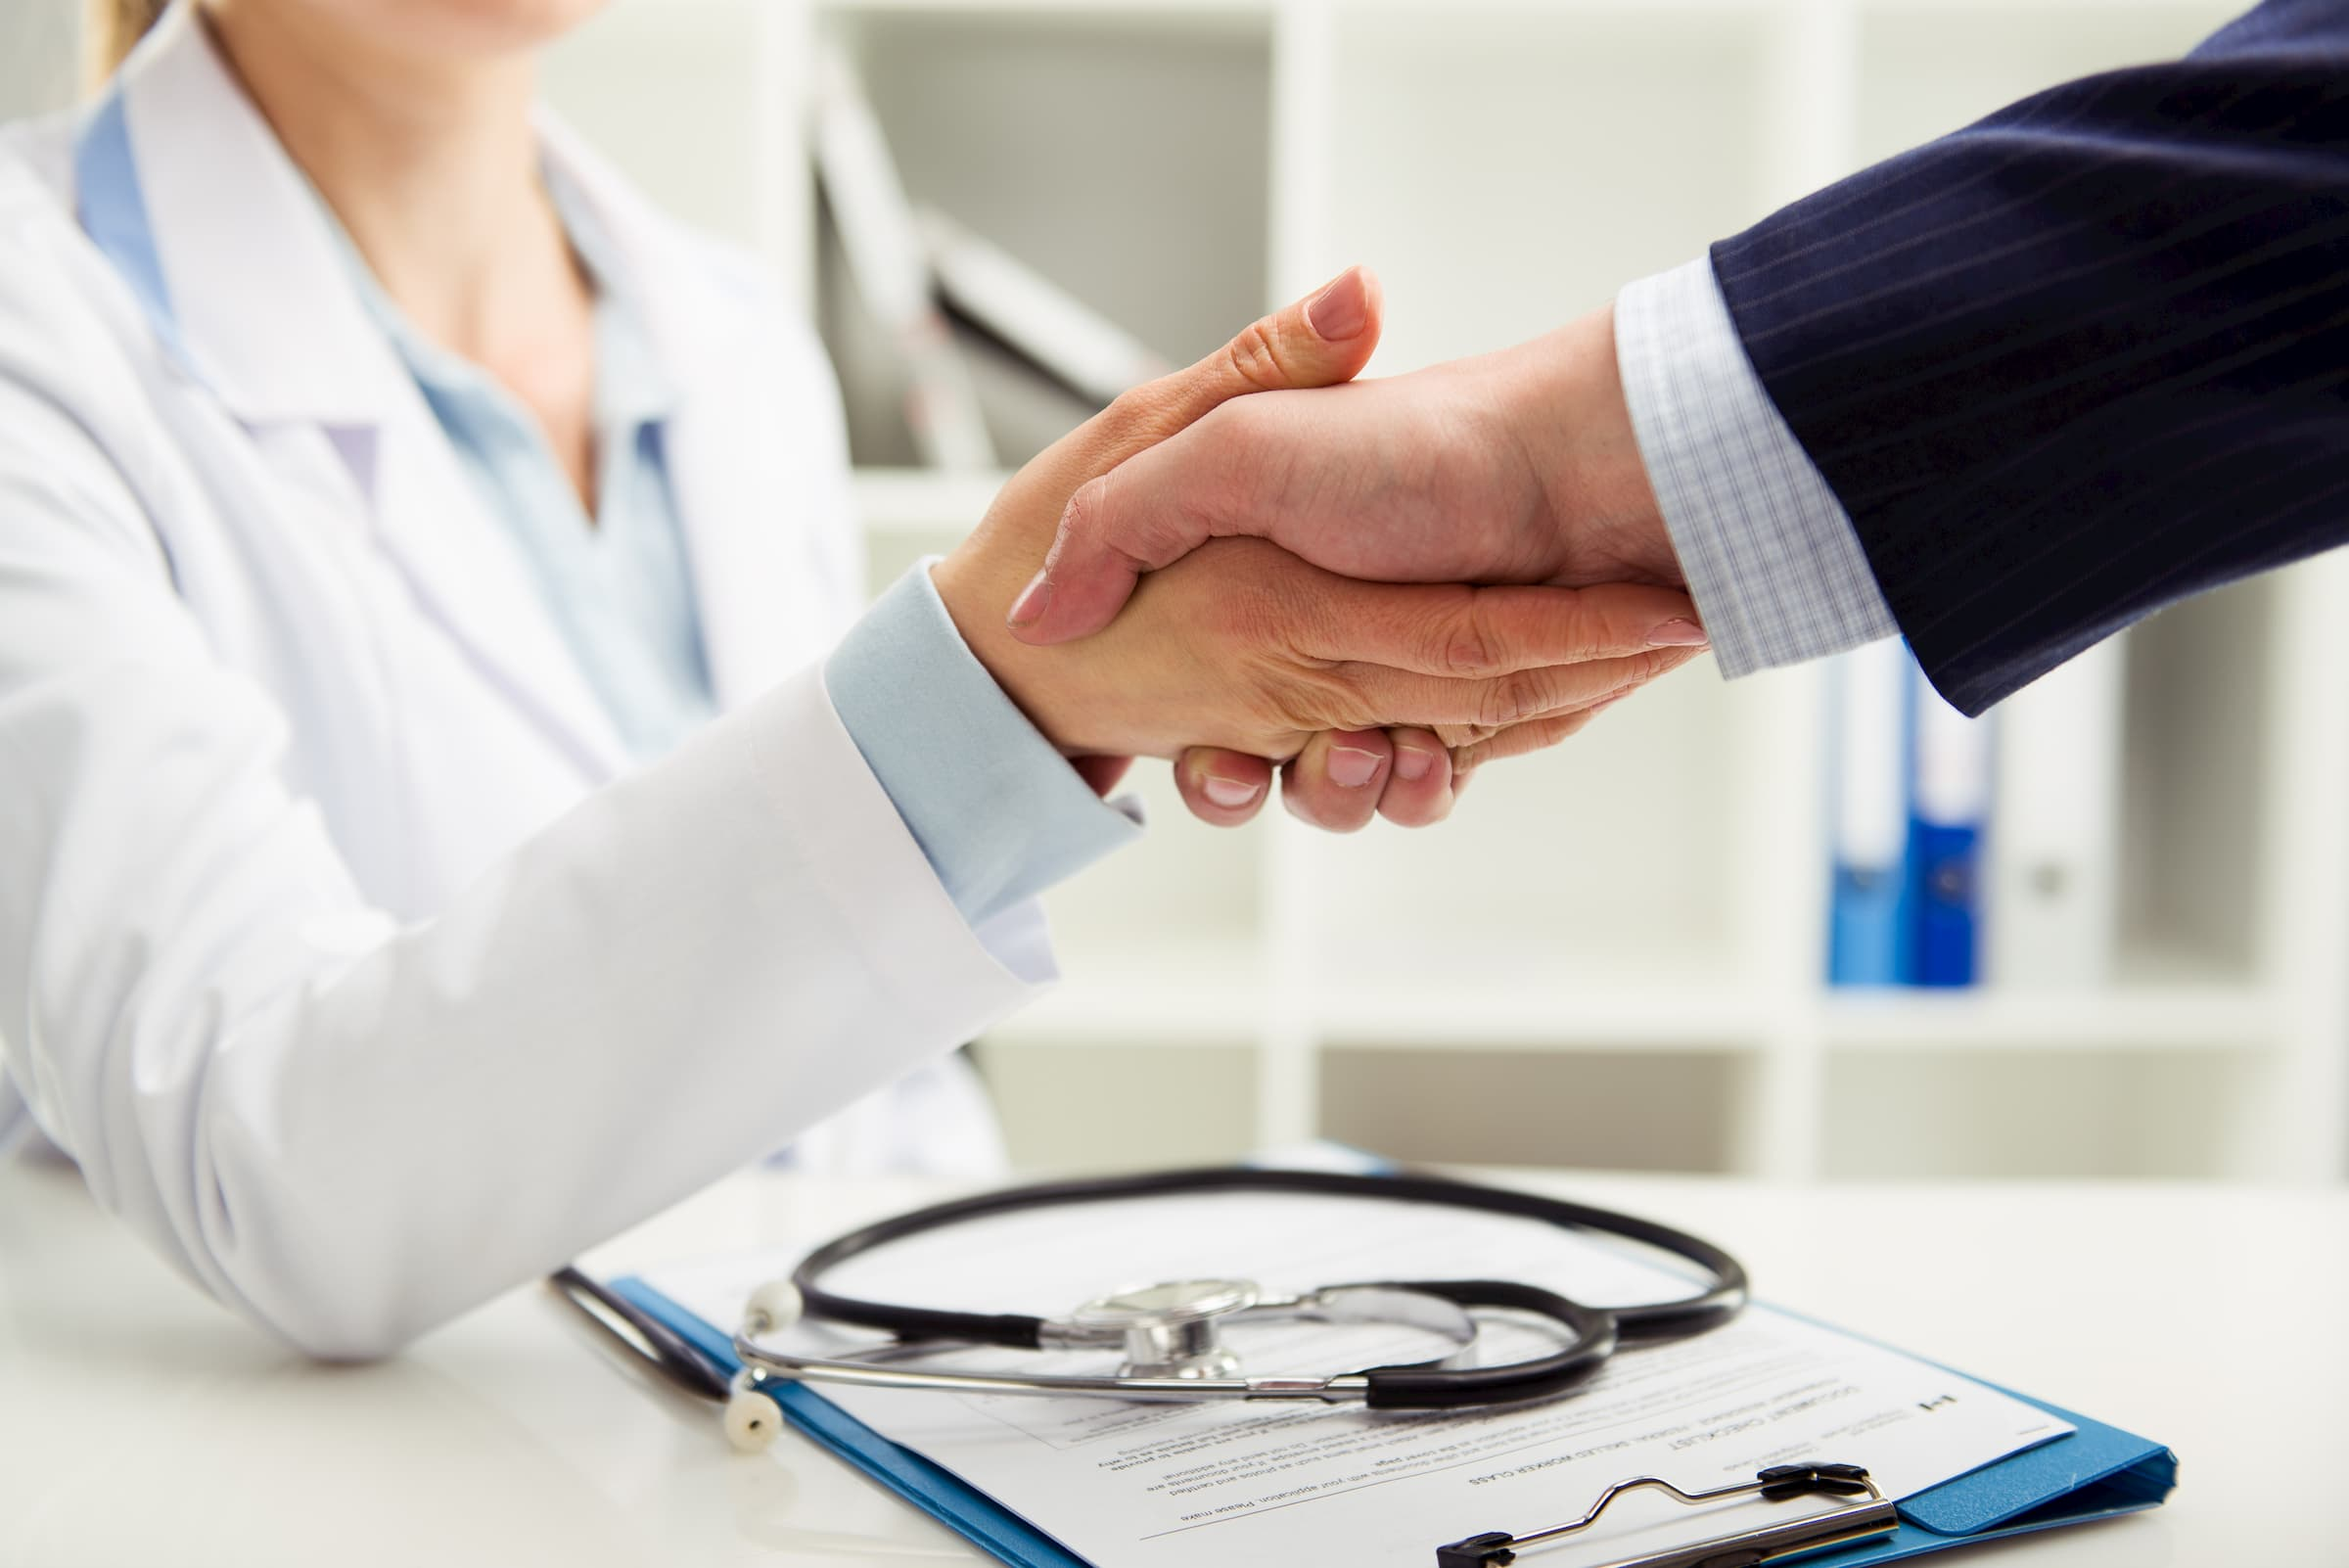 white doctor shaking hands with patient after signing insurance paperwork